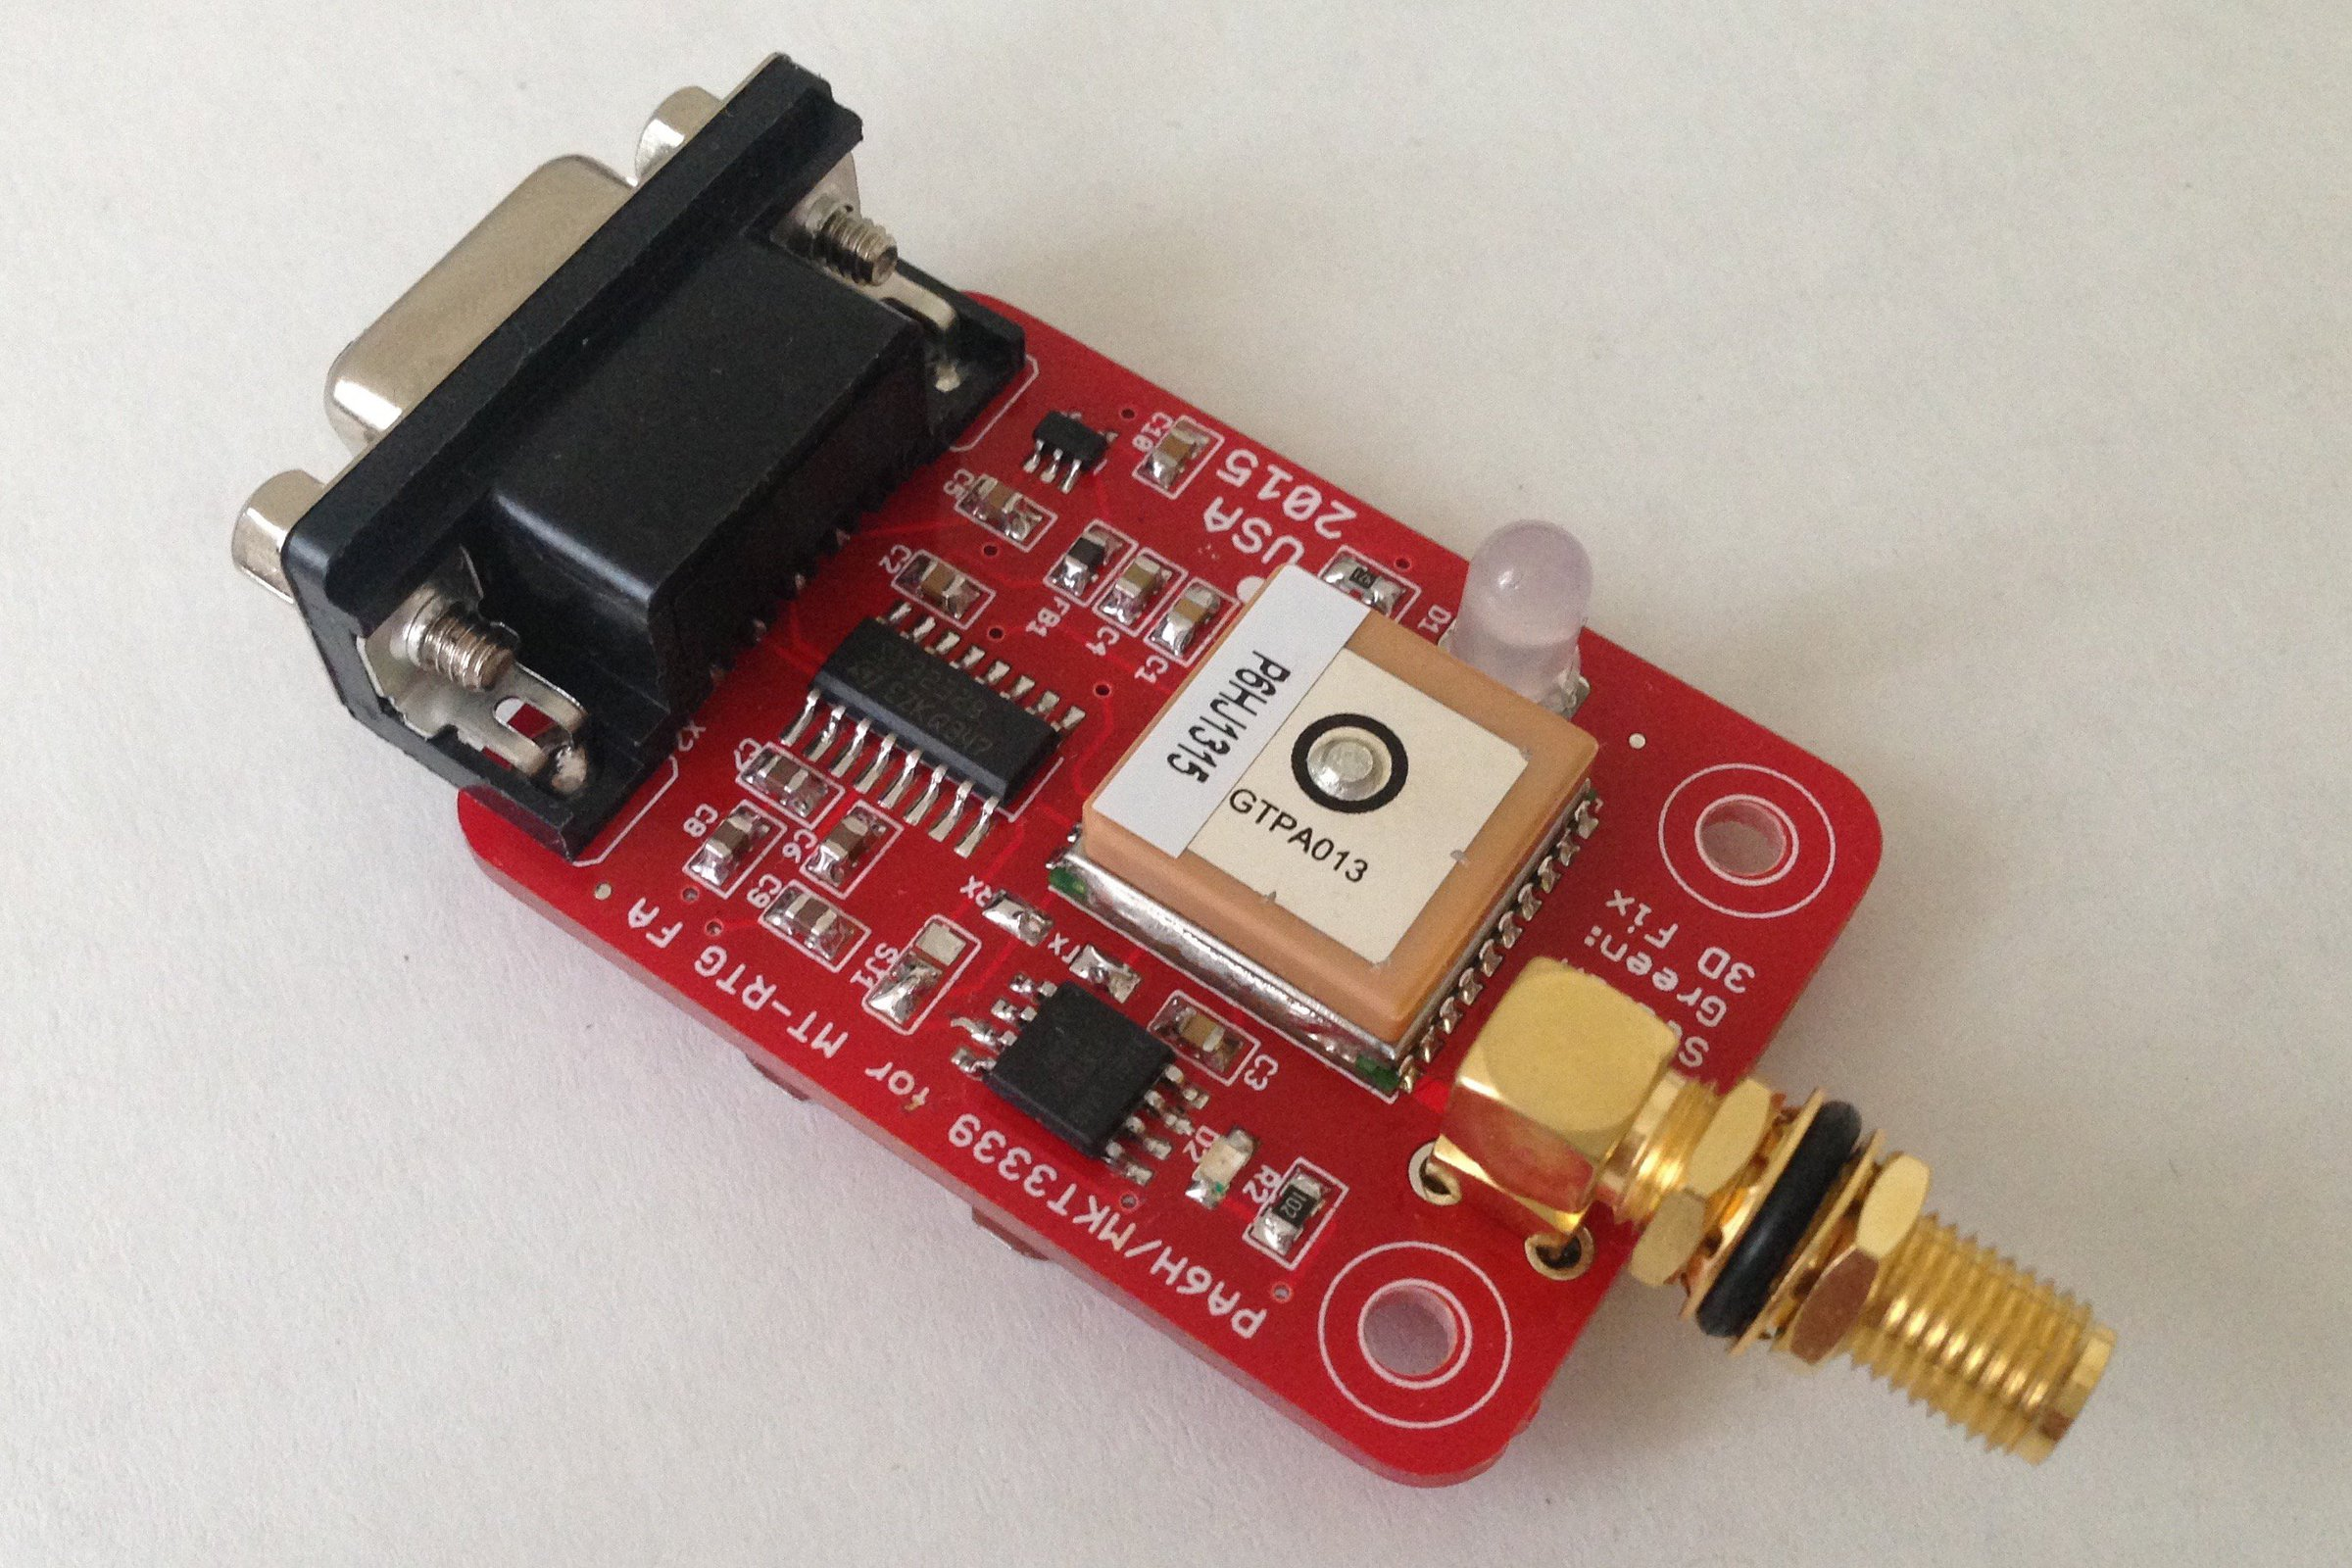 Pa6h Gps With Sma For Aprs Trackers From Ptudor On Tindie Tracker Pcb Board Printed Circuit Assembly Buy 3